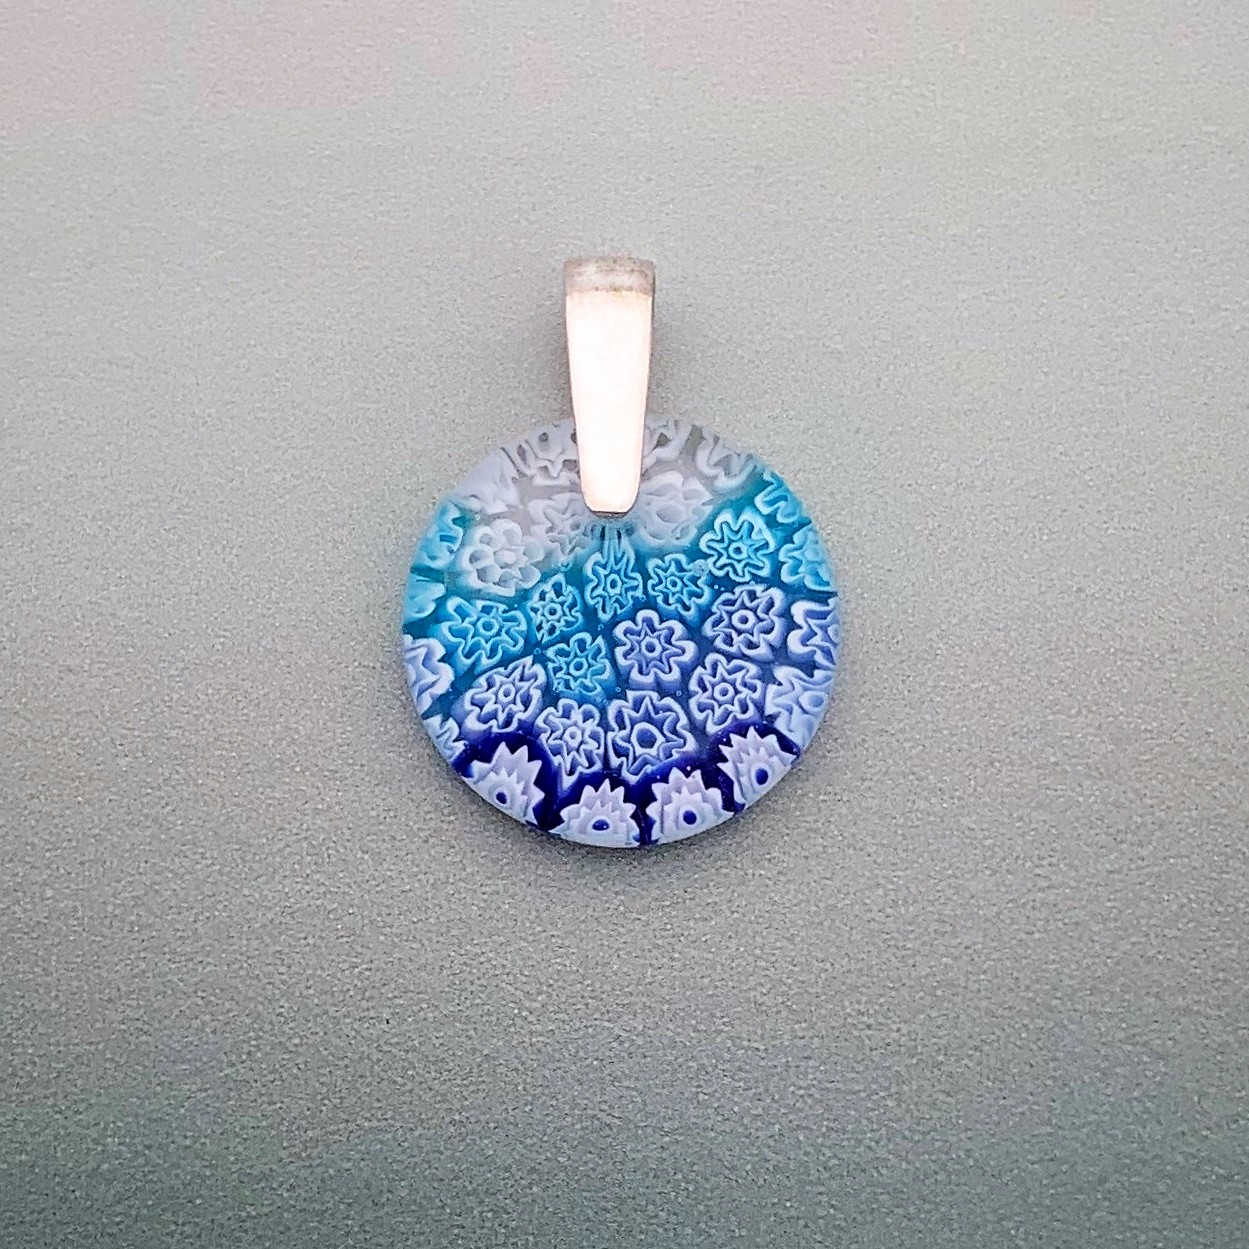 Fused Millefiori glass 25mm round pendant in sky cascade fleurette